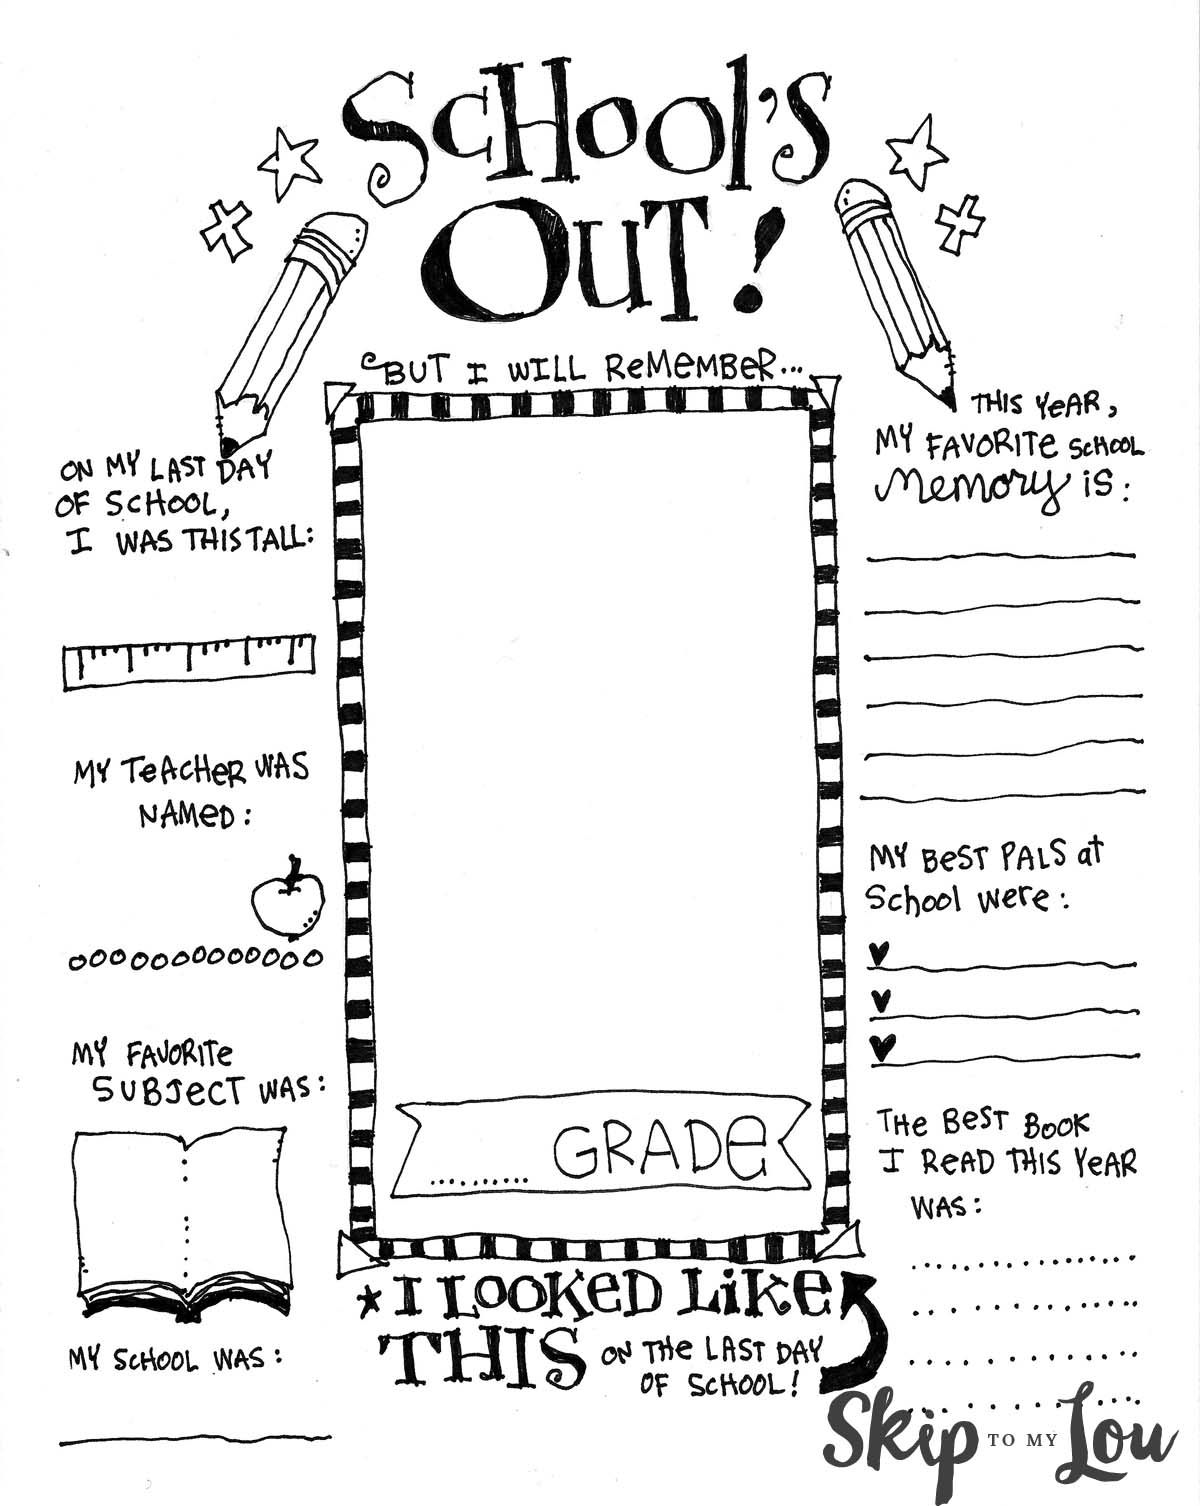 last day of school coloring pages The coolest FREE printable End of School Coloring Page | Bloggers  last day of school coloring pages